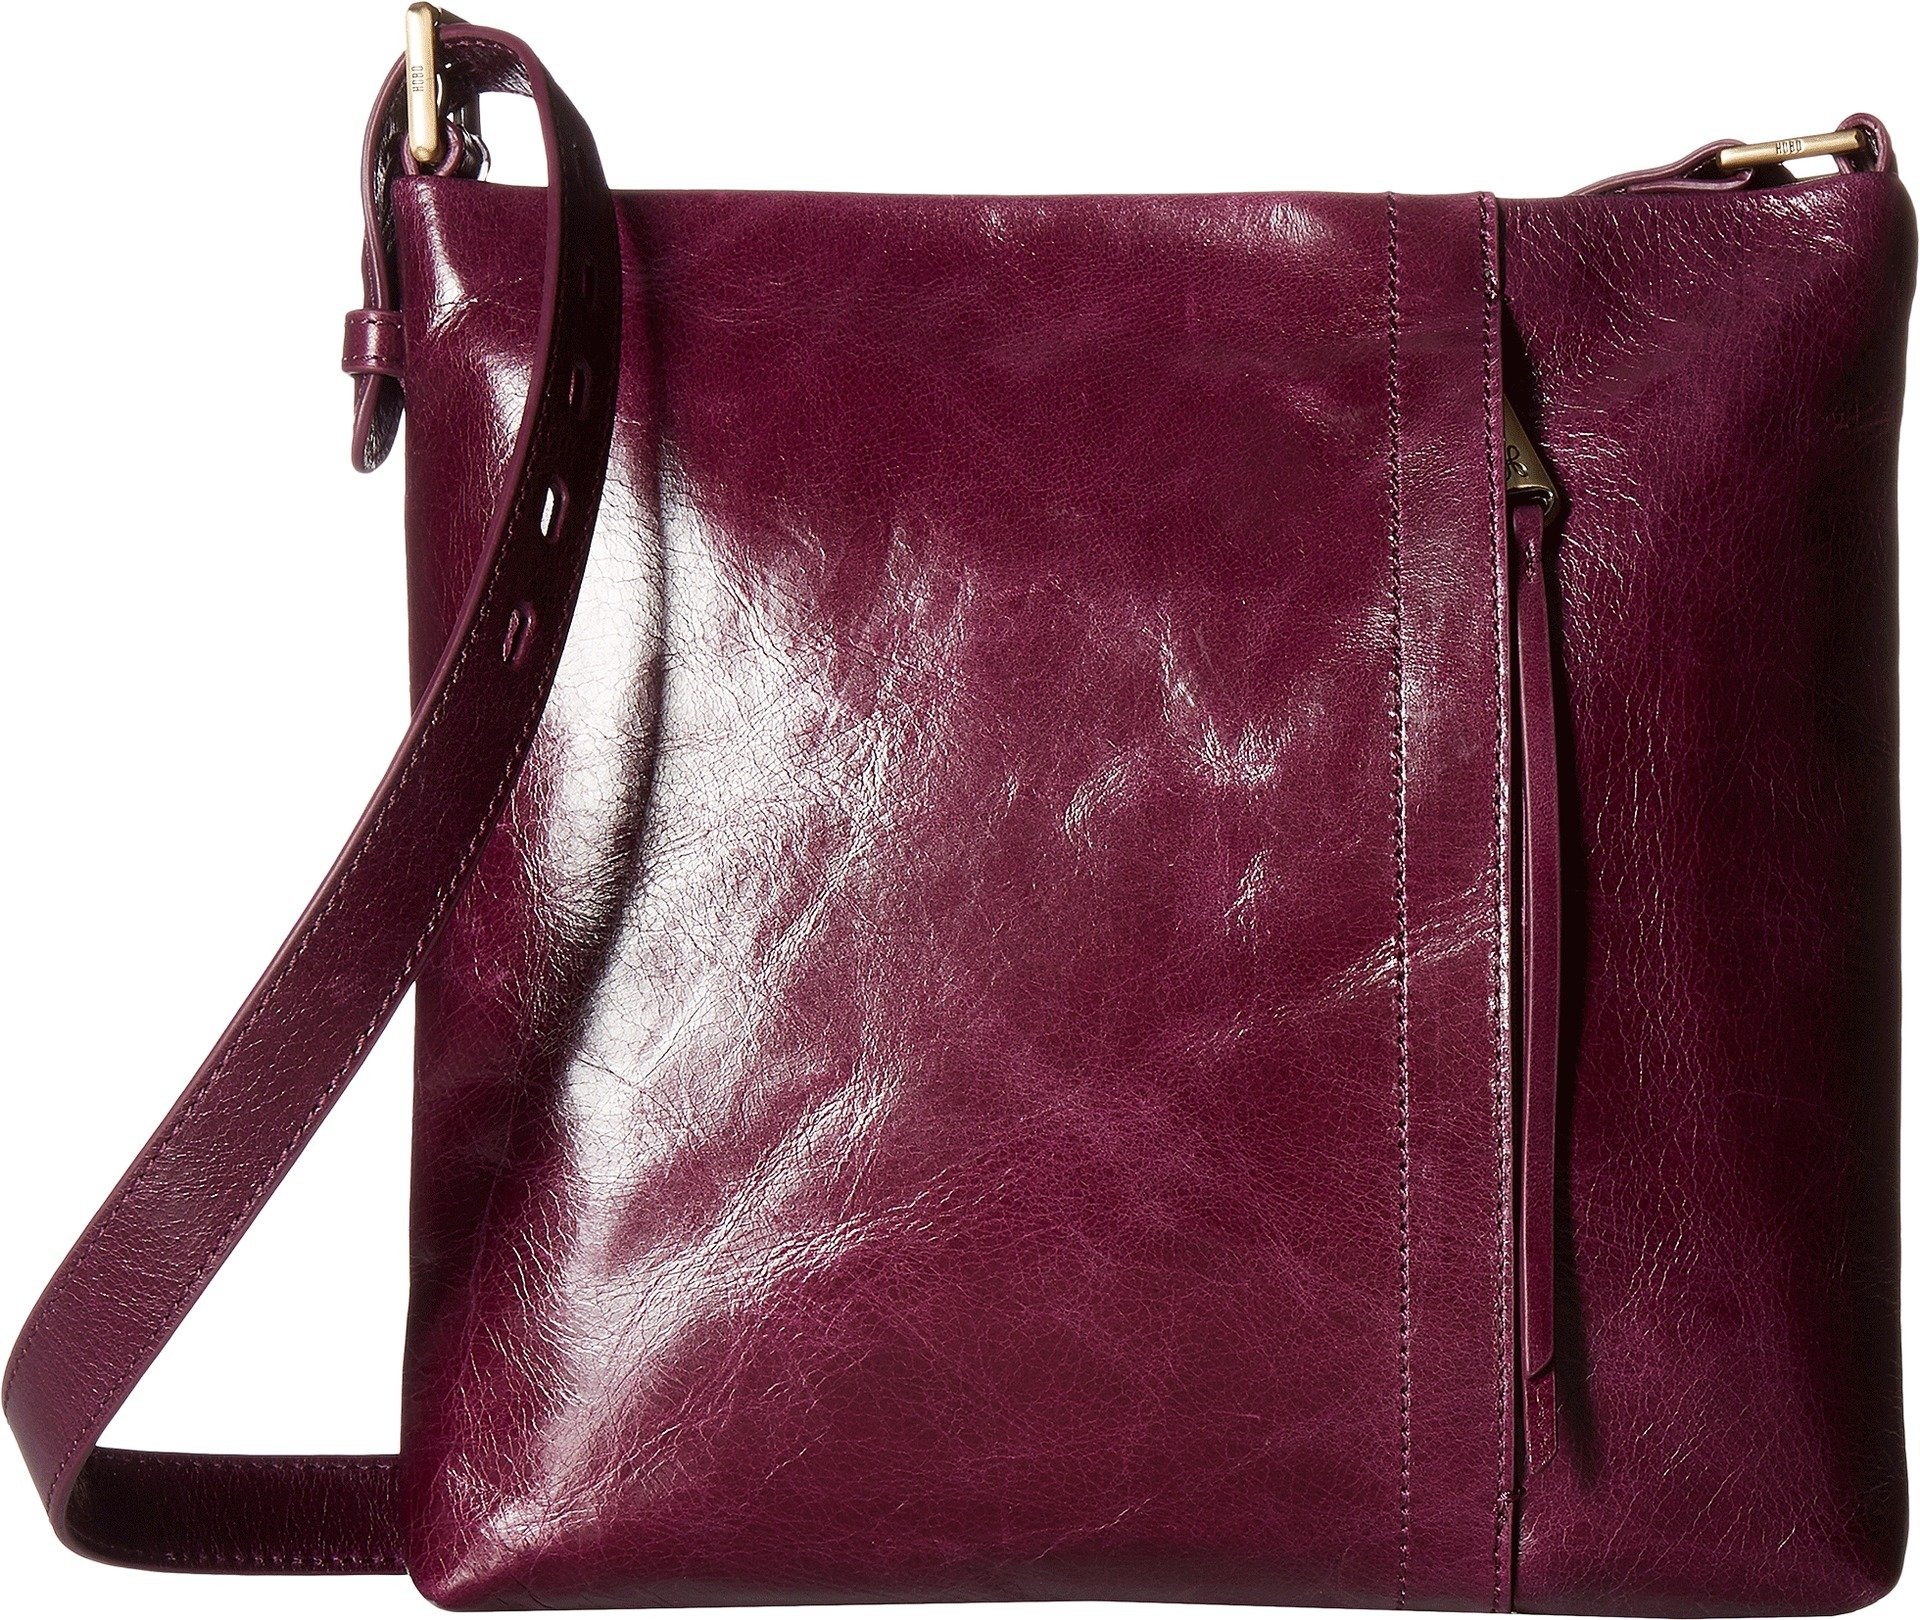 Hobo Women's Vintage Hide Drifter Crossbody Bag (Eggplant)